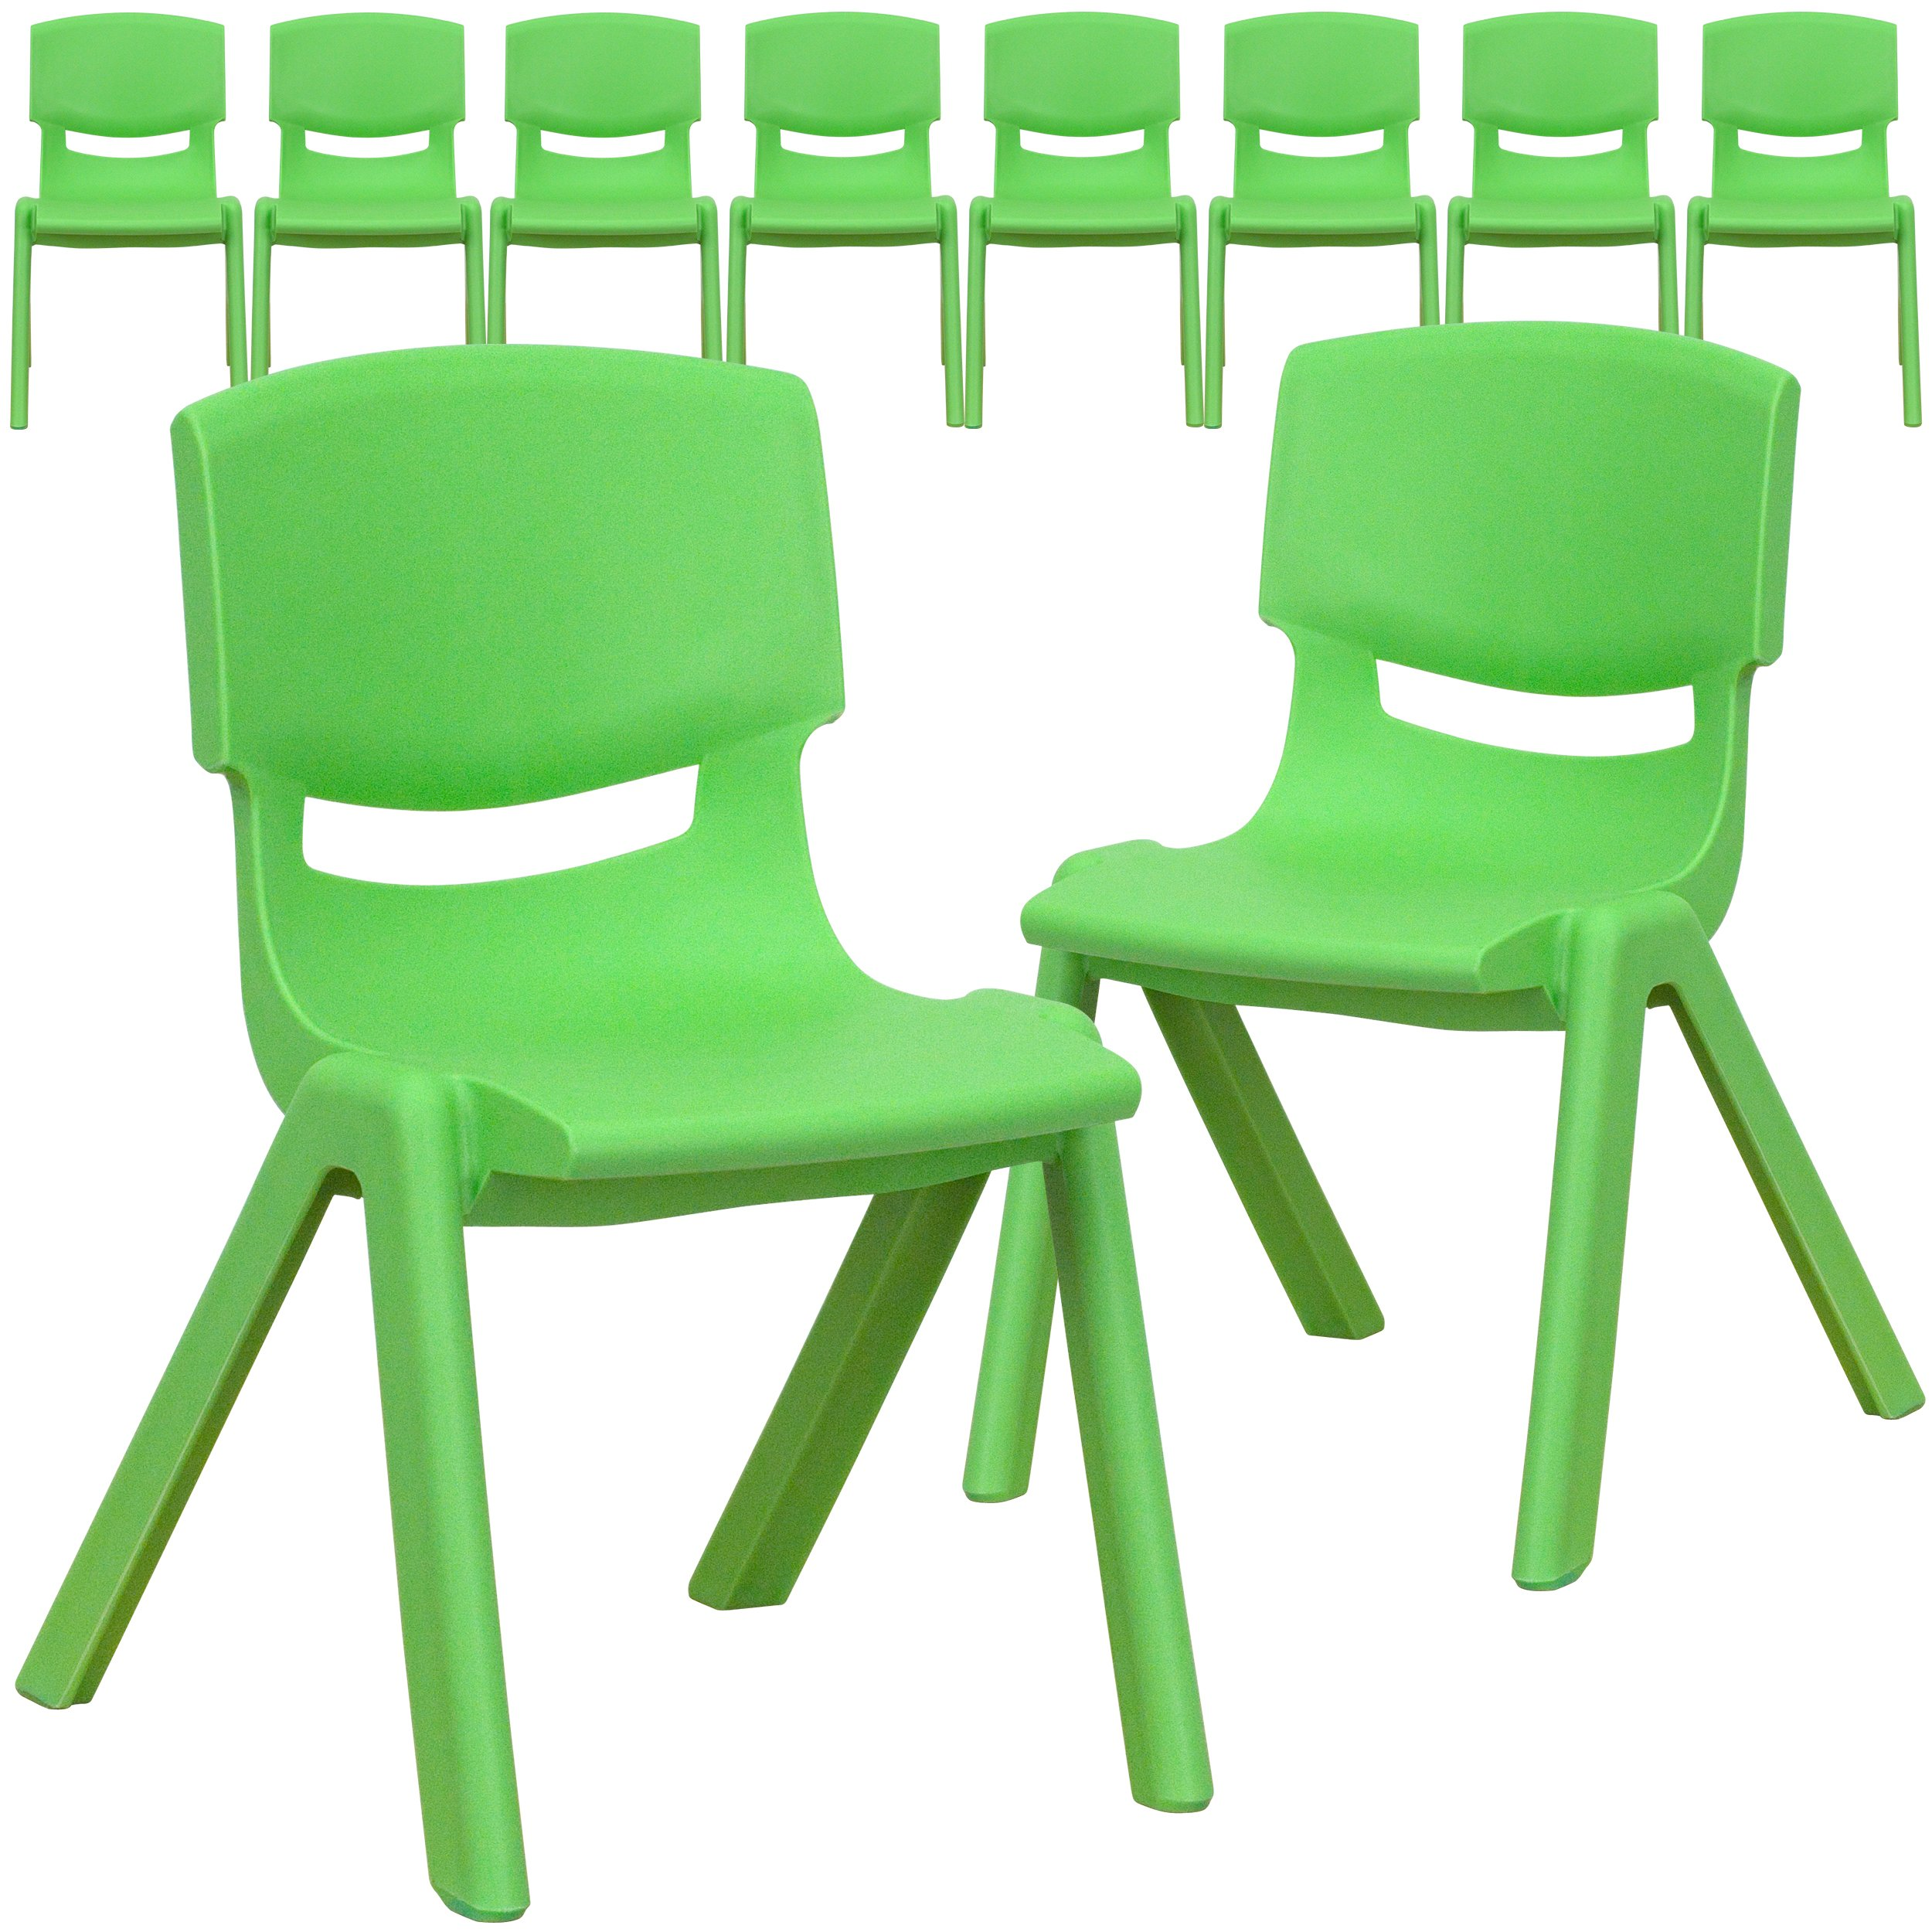 Flash Furniture 10 Pk. Green Plastic Stackable School Chair with 12'' Seat Height by Flash Furniture